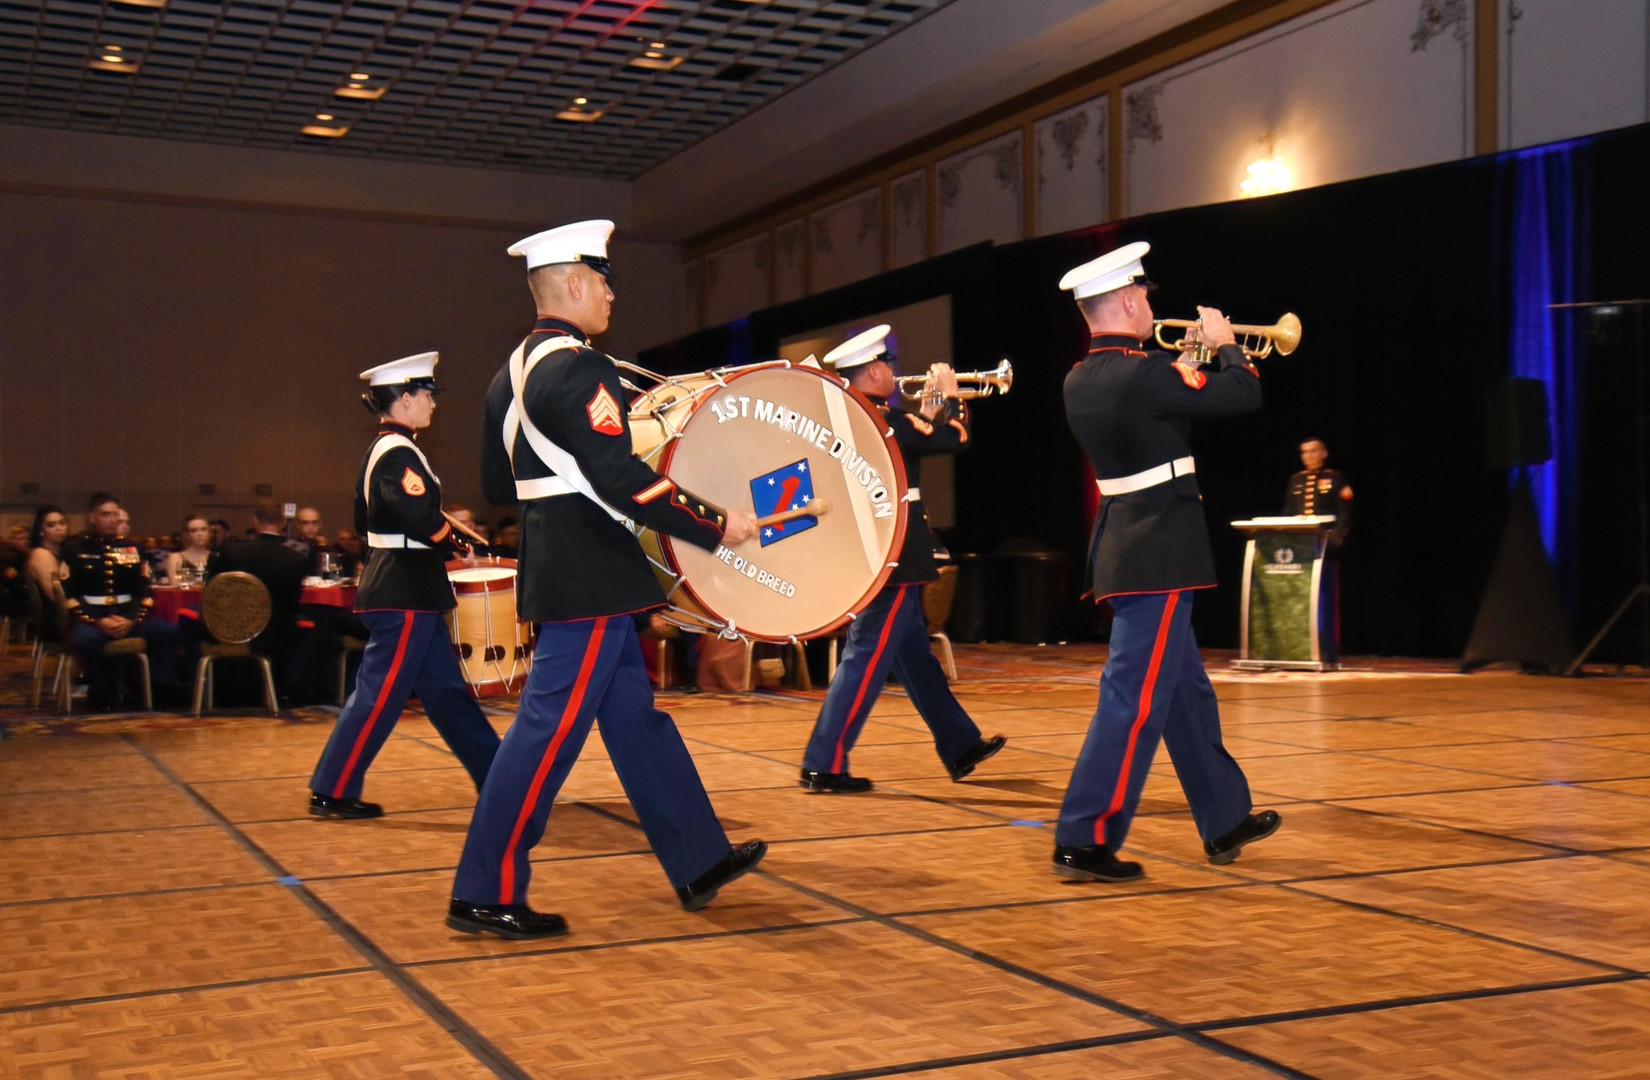 1st Marine Division's Band walking perfectly in time